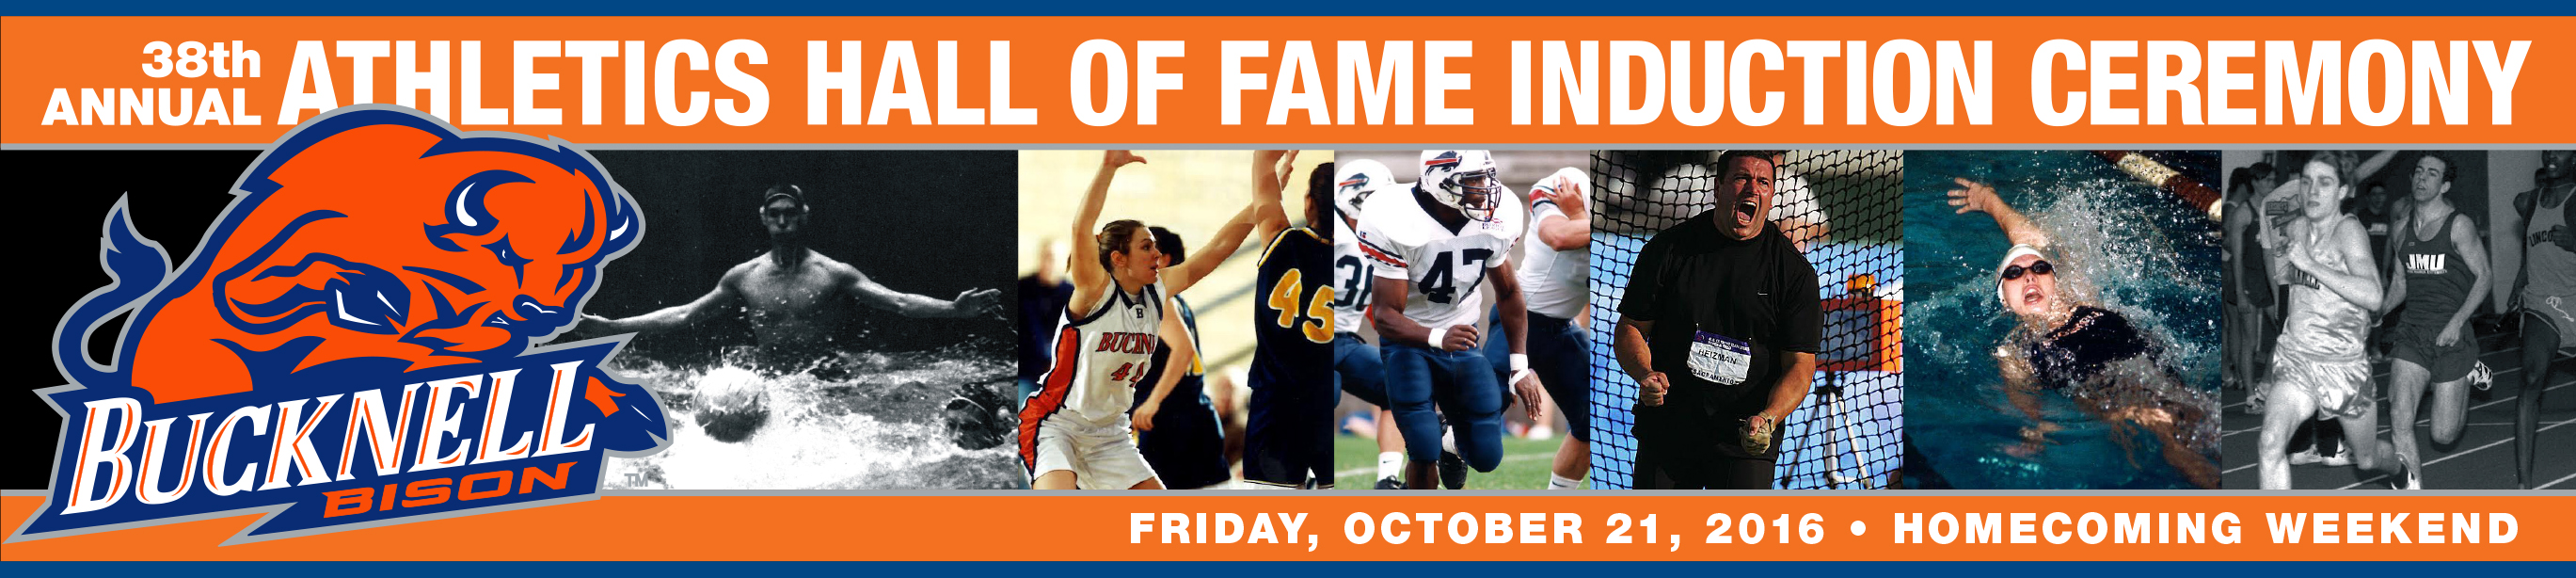 38th Annual Athletics Hall of Fame Induction Ceremony